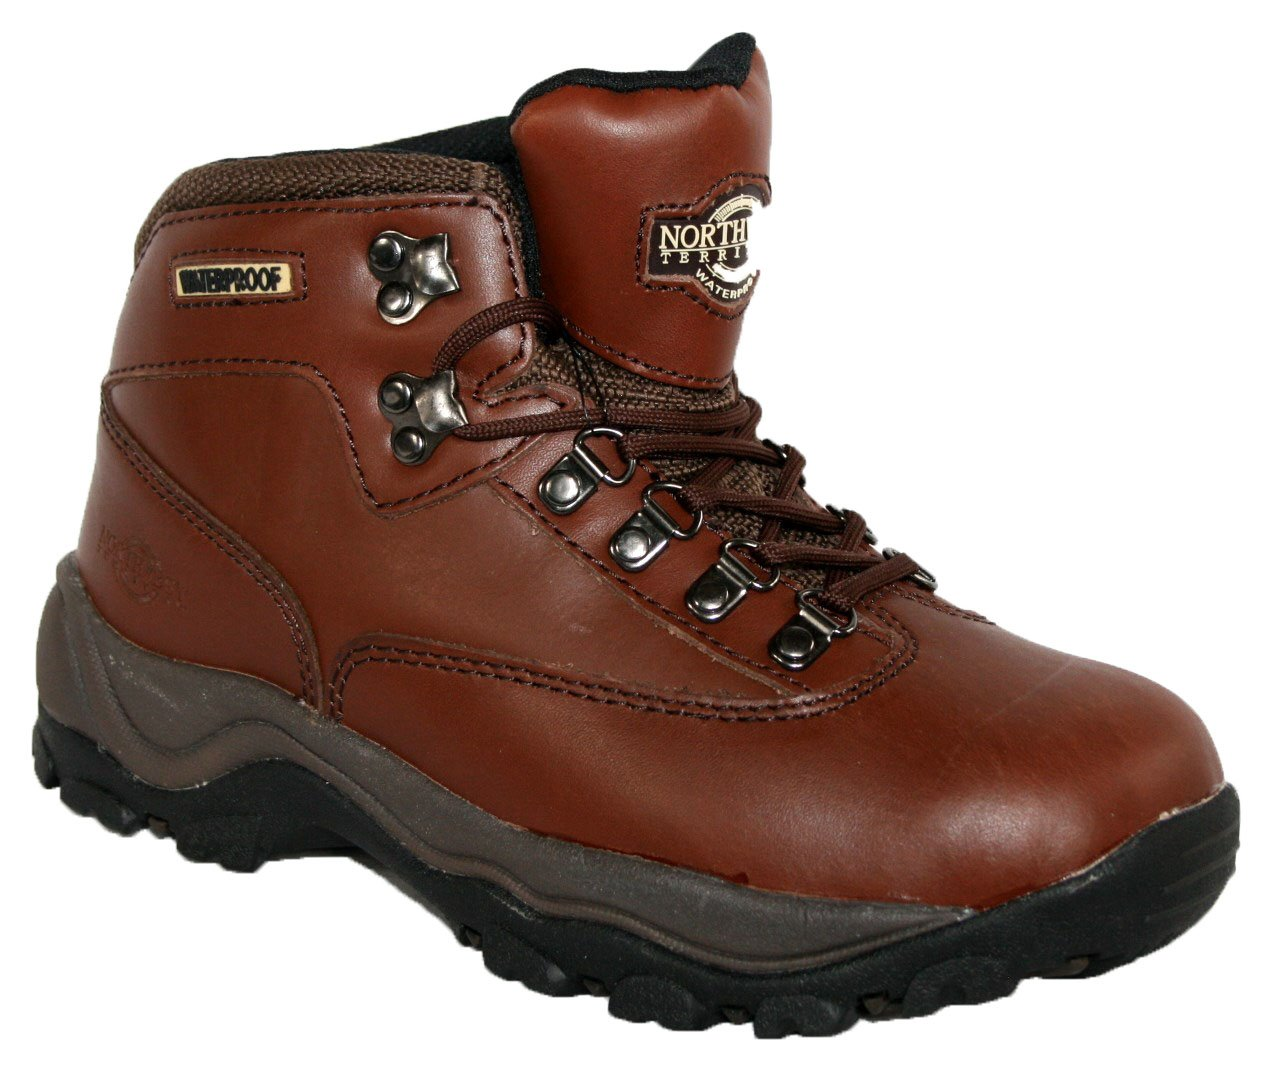 71gcVkM6jUL - LADIES PEAK LACE UP PREMIUM LEATHER UPPER WATERPROOF WALKING/HIKING TREKKING BOOT